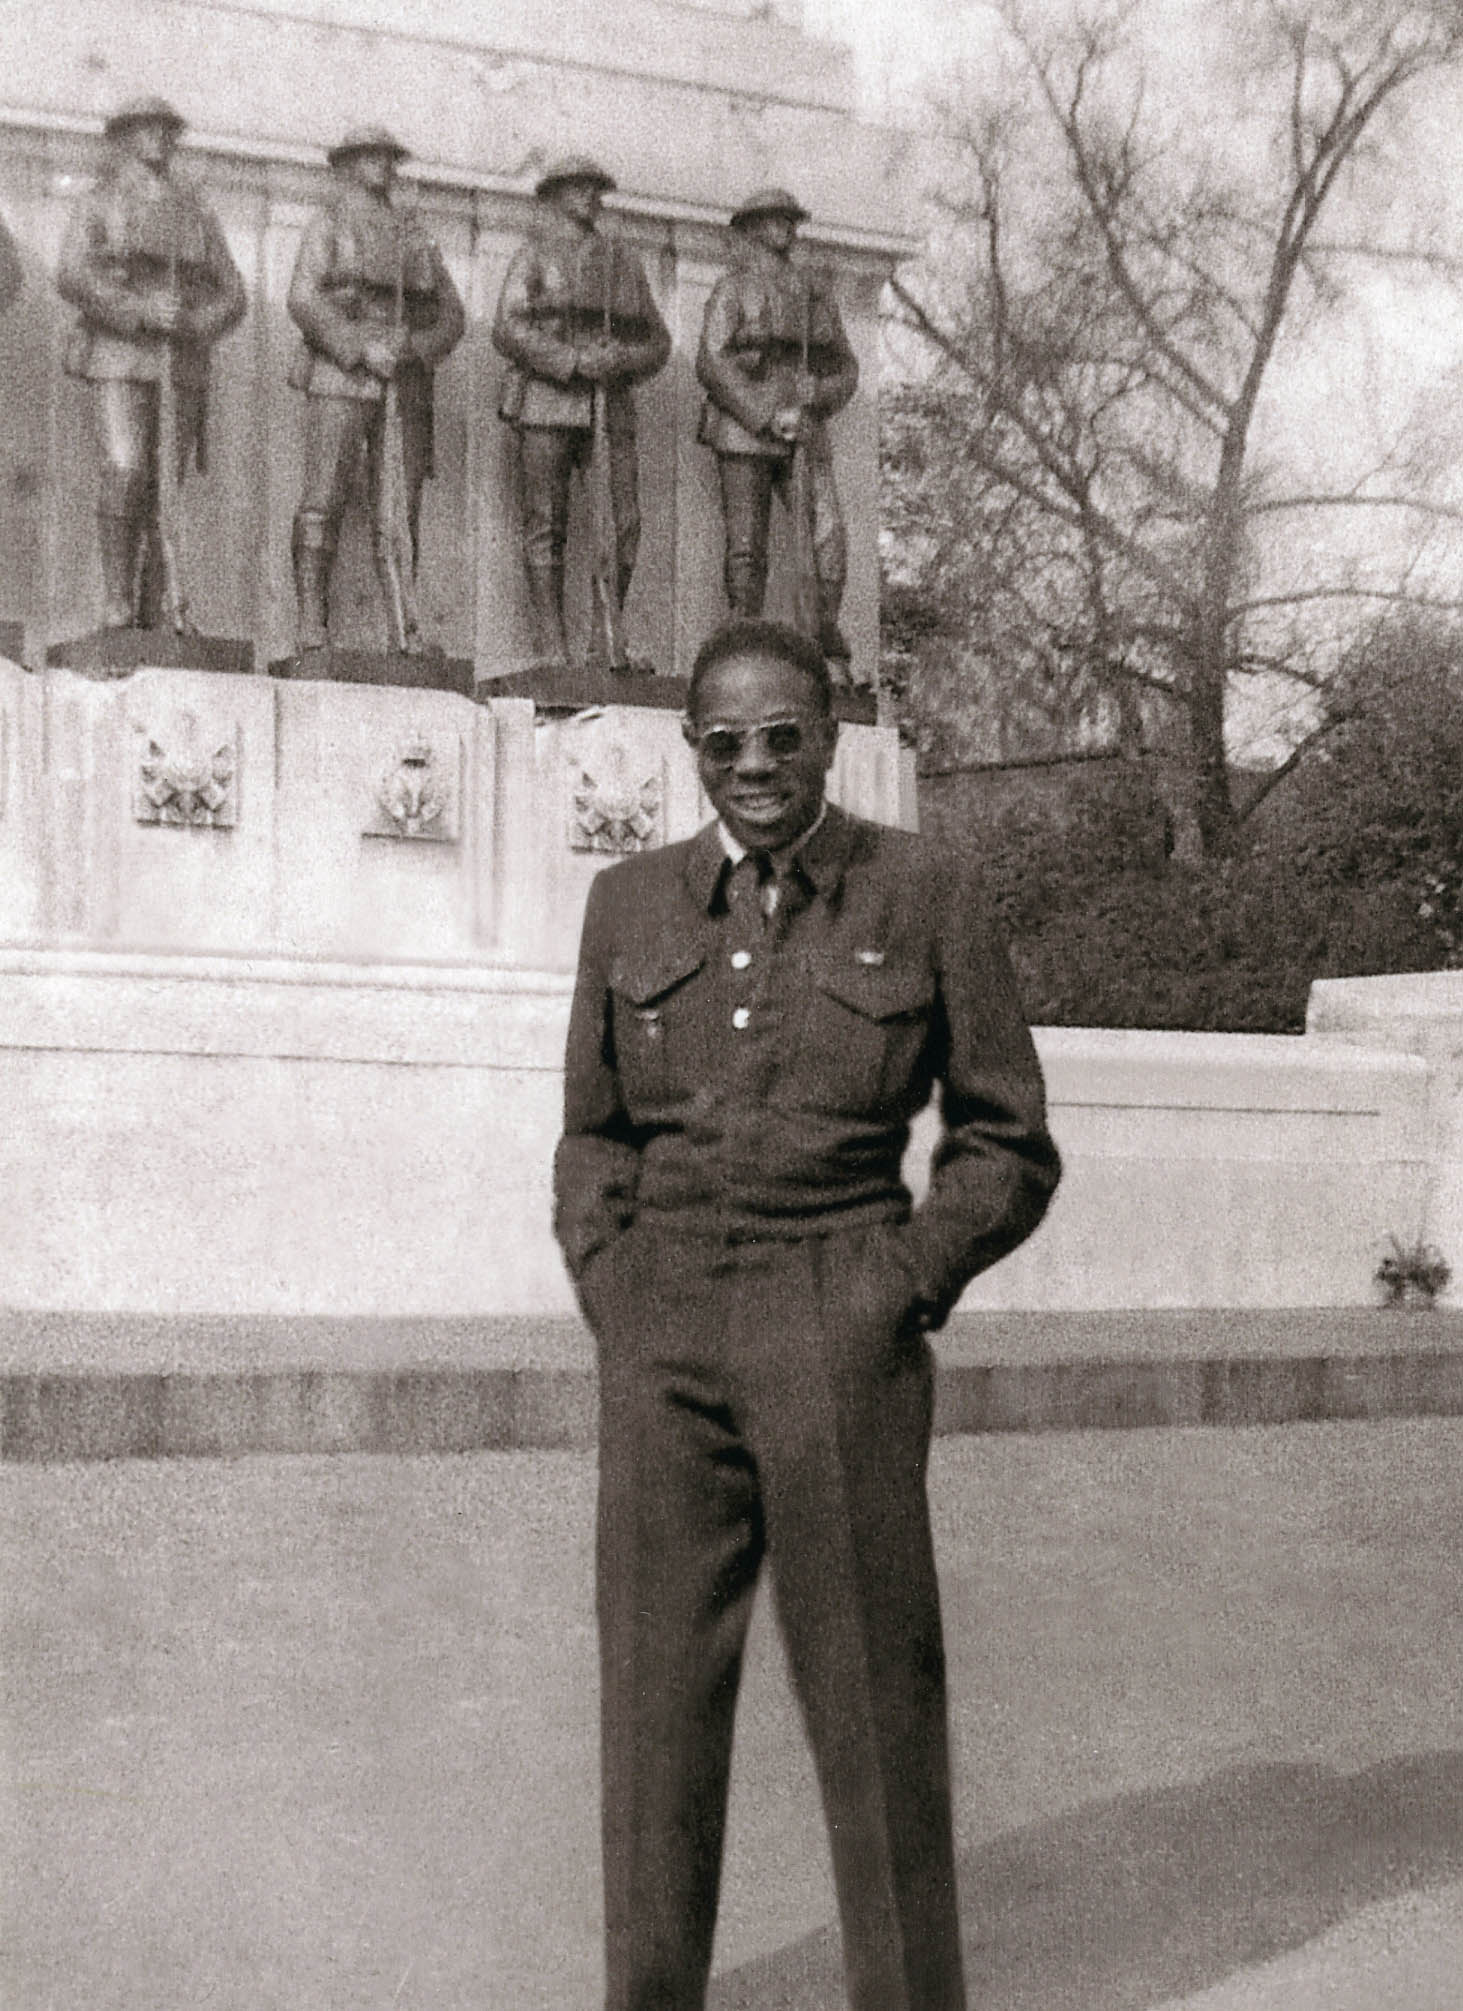 Leonard Braithwaite joined the RCAF in 1943 after being turned away several times at the recruiting centre in Toronto He served as groundcrew in the Royal Canadian Air Force's No. 6 Bomber Group during the Second World War. In this photo, he poses in front of a war memorial in London, England, shortly after V-E Day. He became the first Black member of a provincial legislature in Canada, being elected to the Ontario legislature in 1963.PHOTO: Leonard Braithwaite via The Memory Project, www.thememoryproject.com